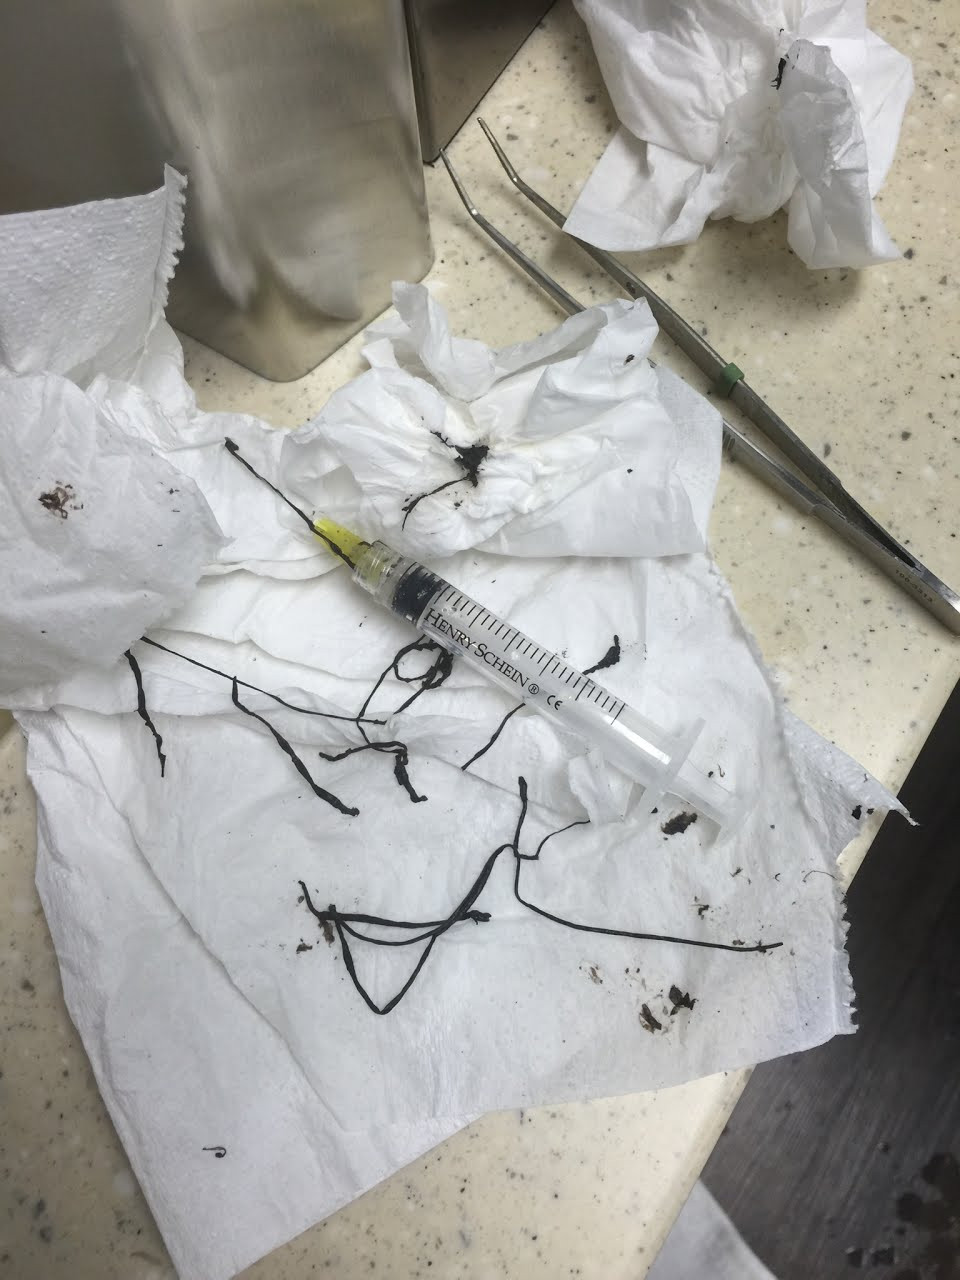 Bacteria extracted from dental unit waterline